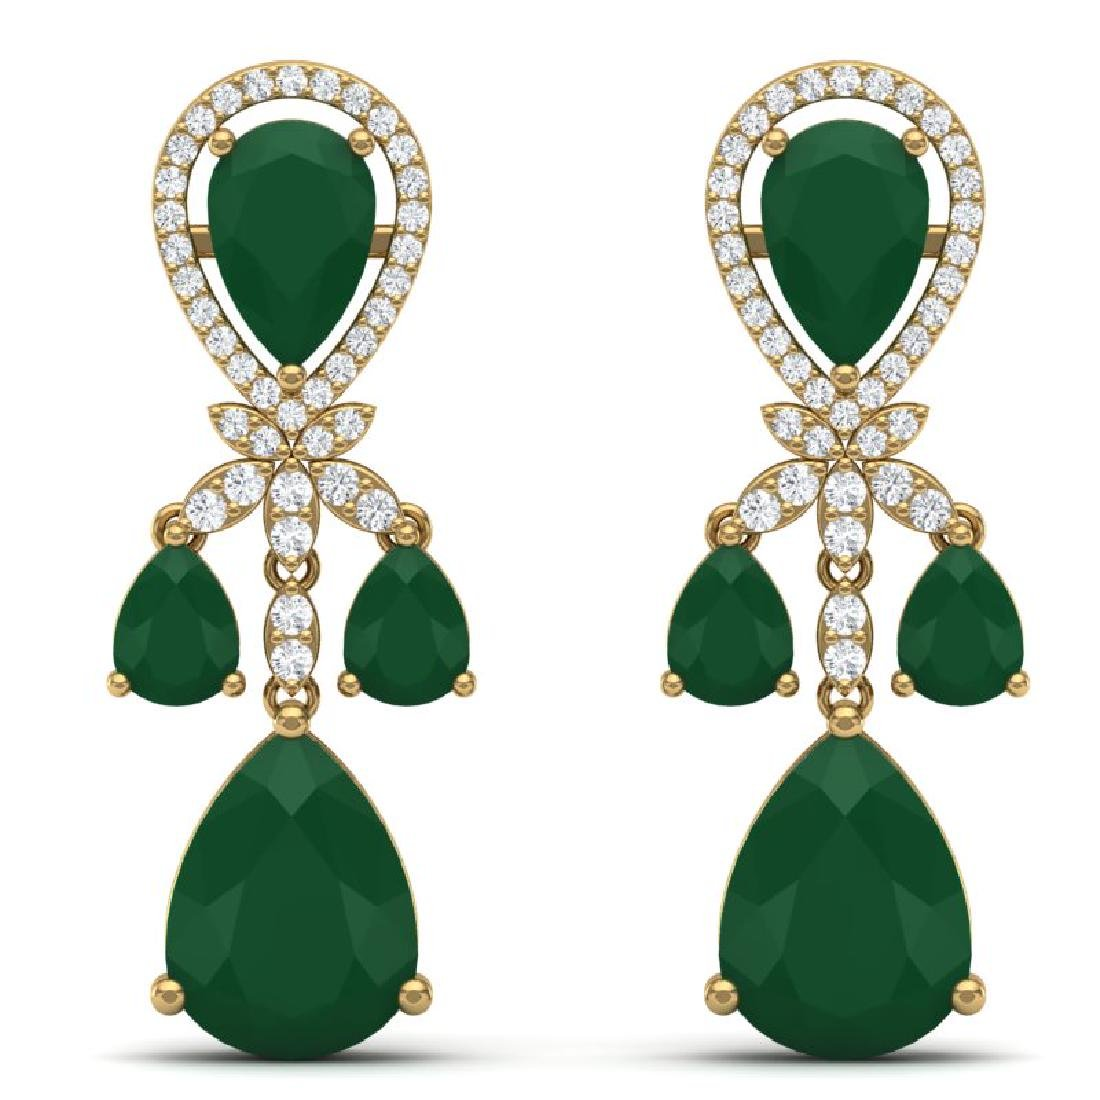 38.29 CTW Royalty Emerald & VS Diamond Earrings 18K